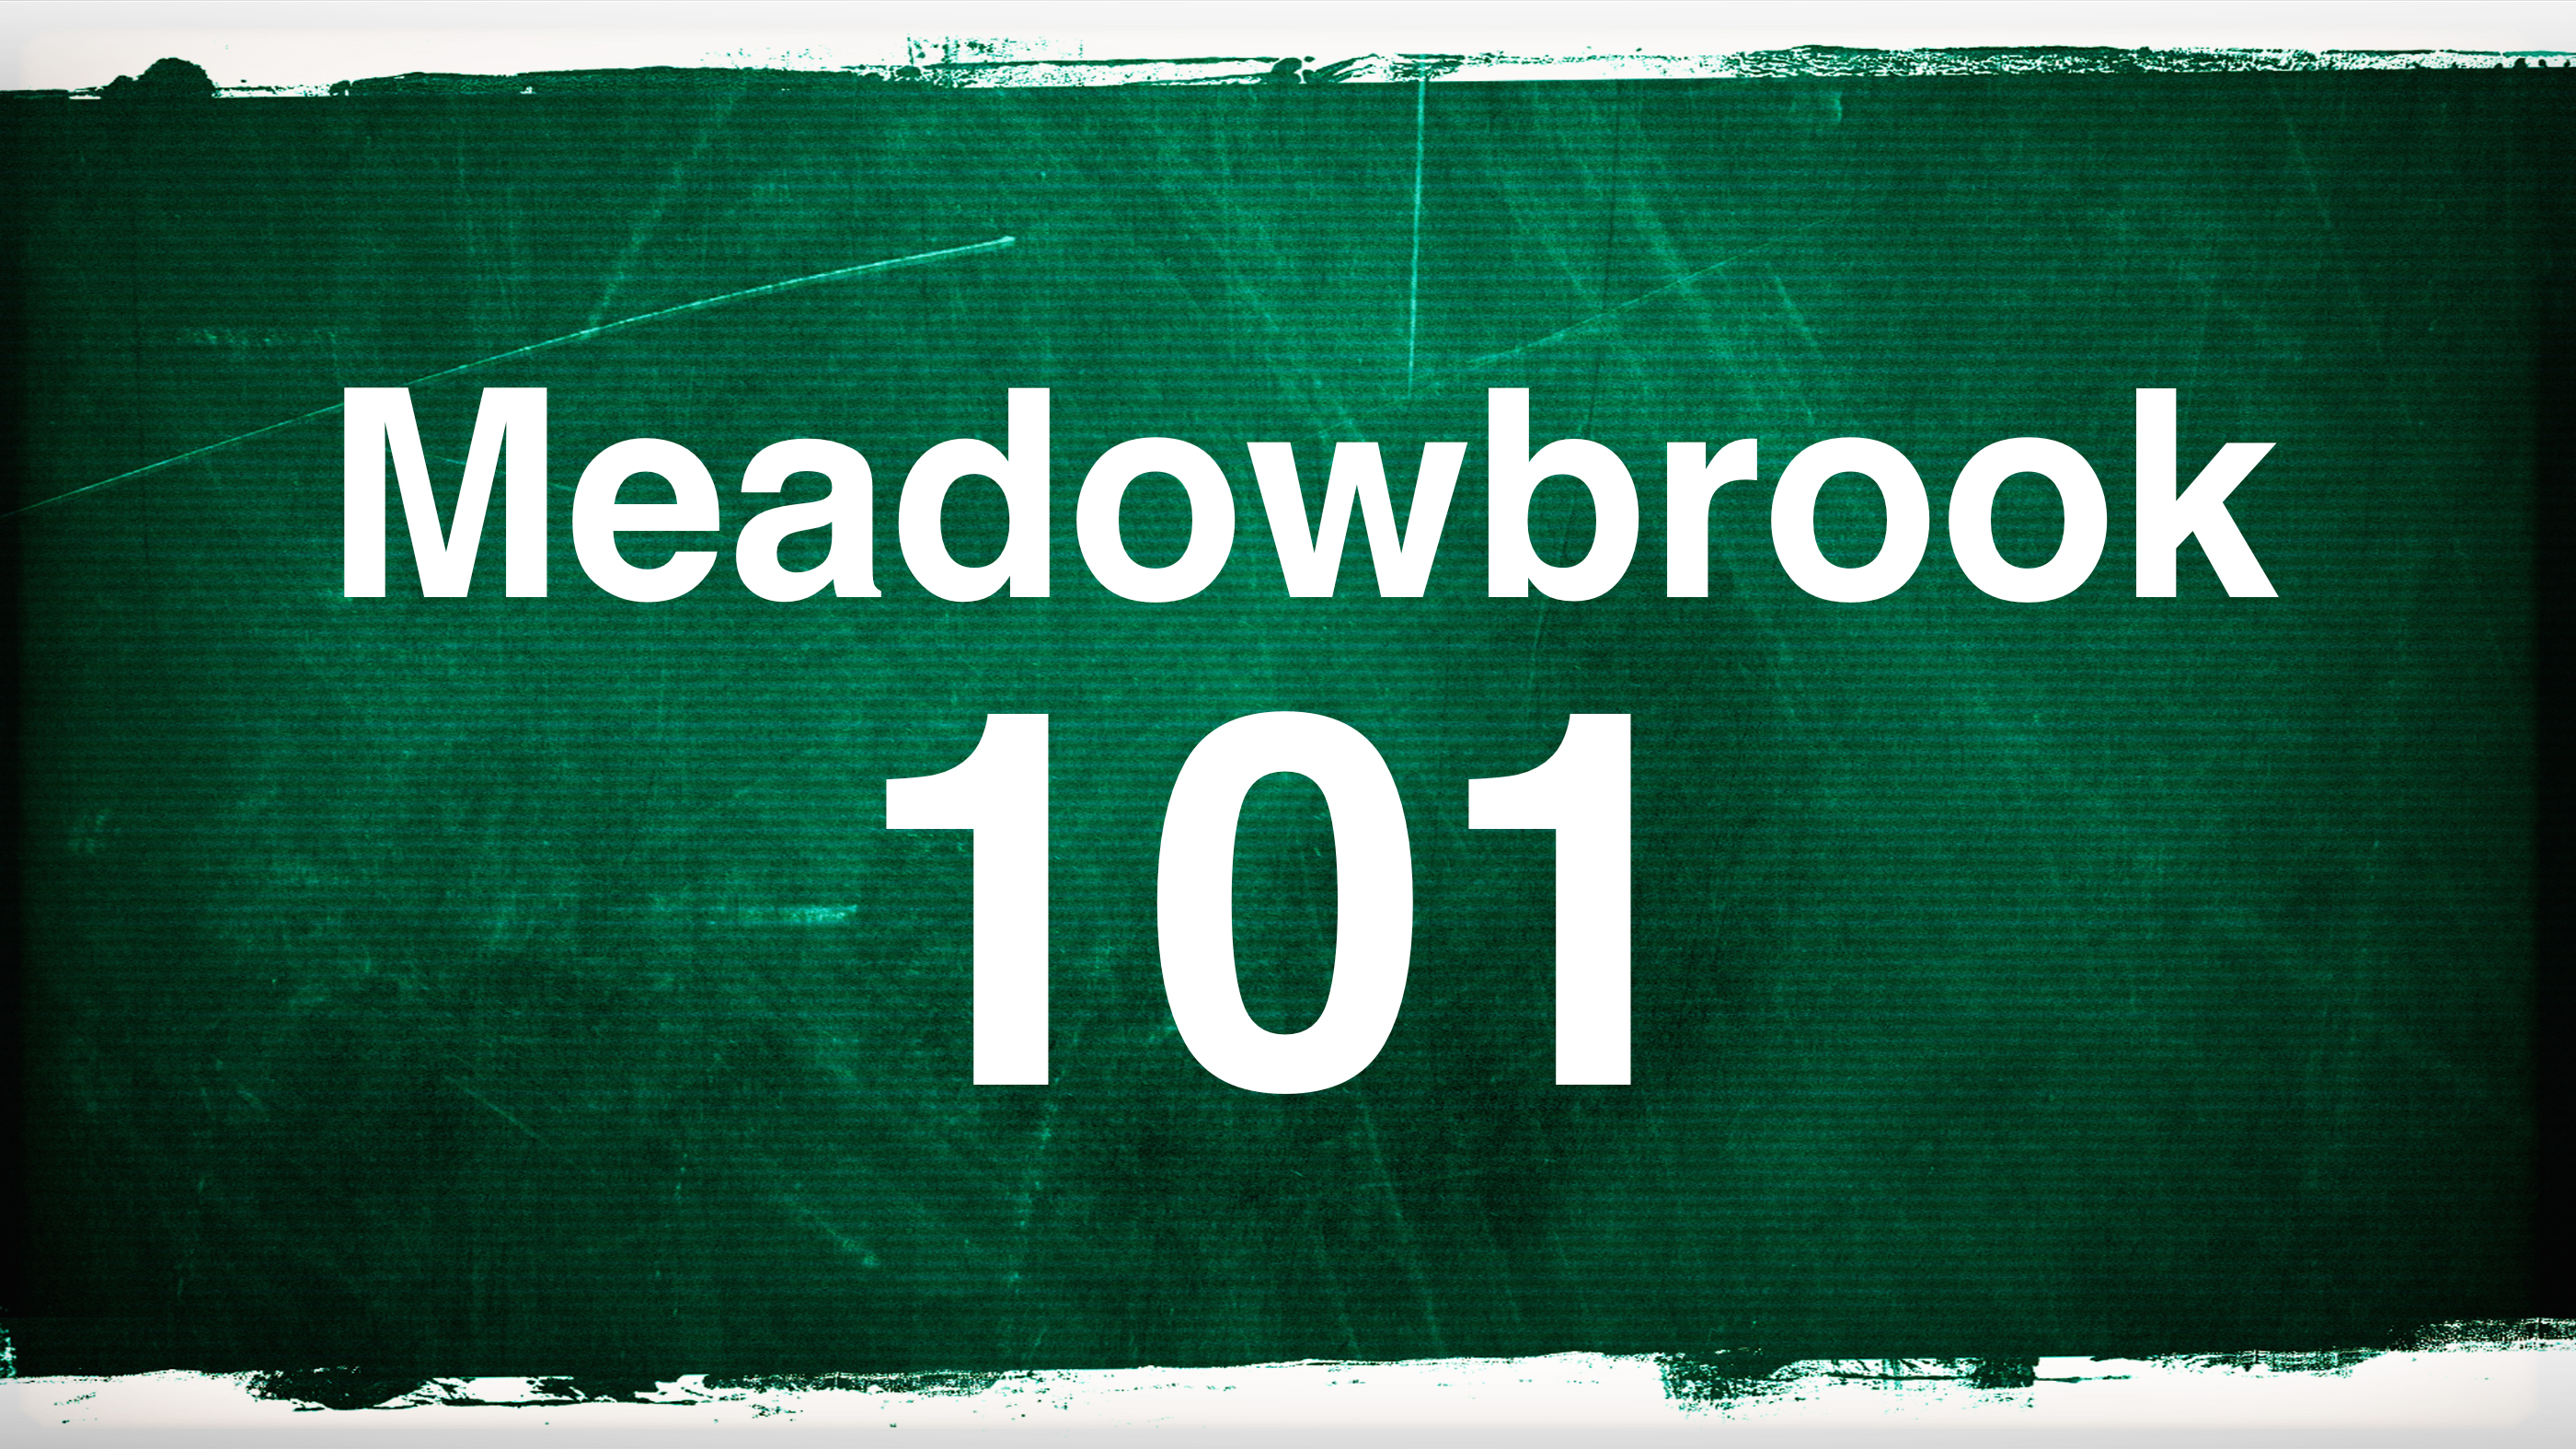 Meadowbrook101.jpg